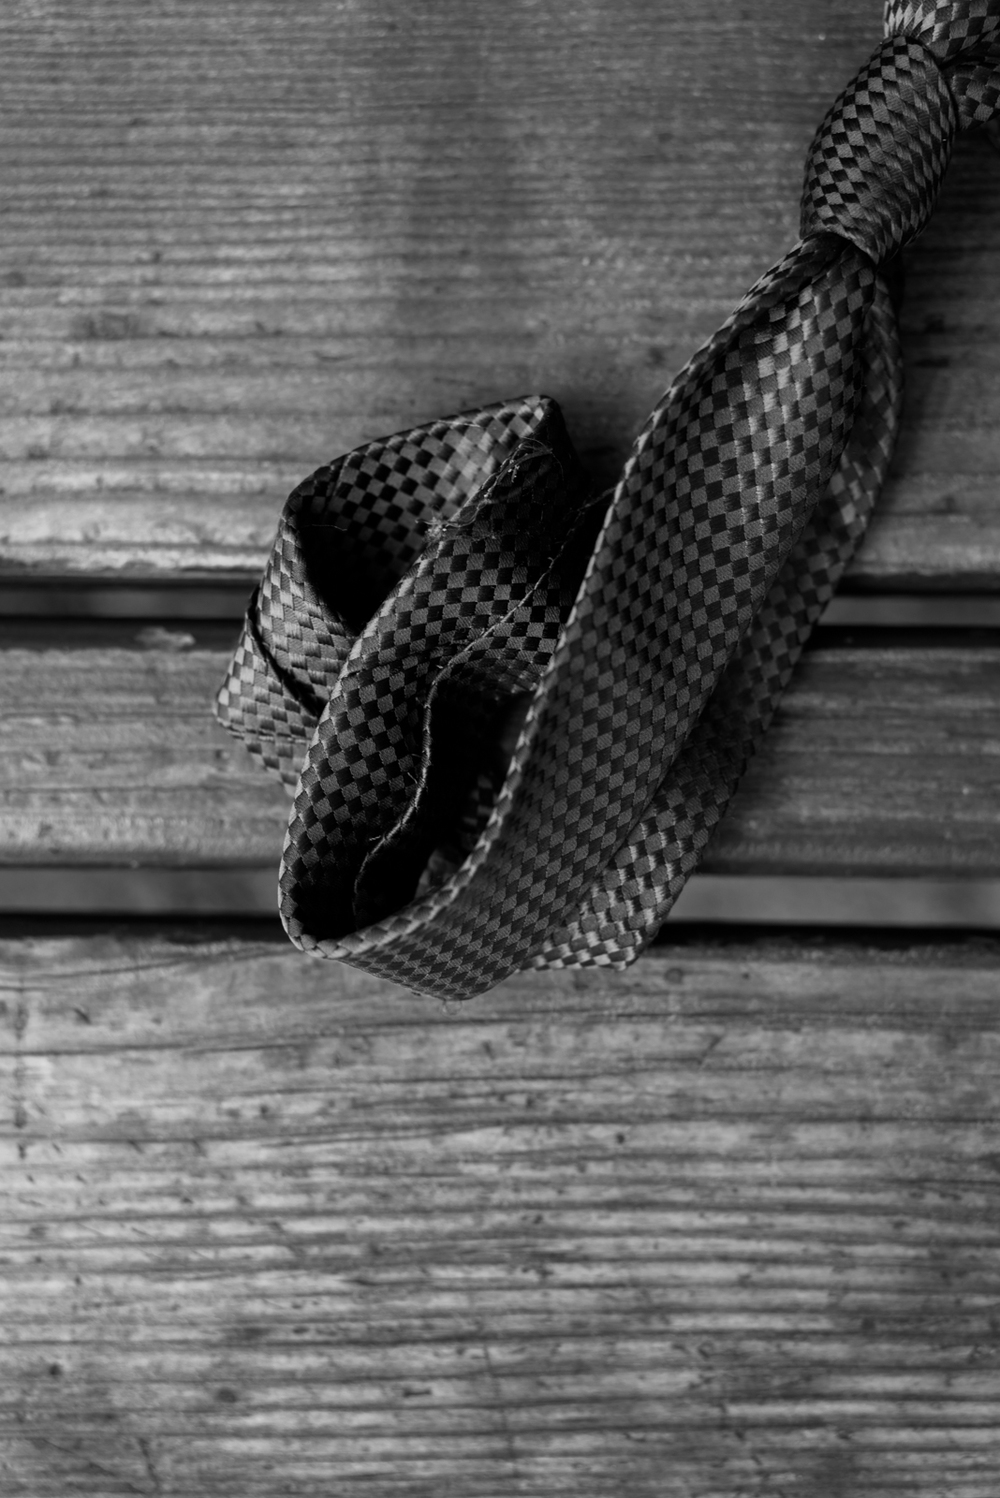 Project 365: #252 - Abandoned tie